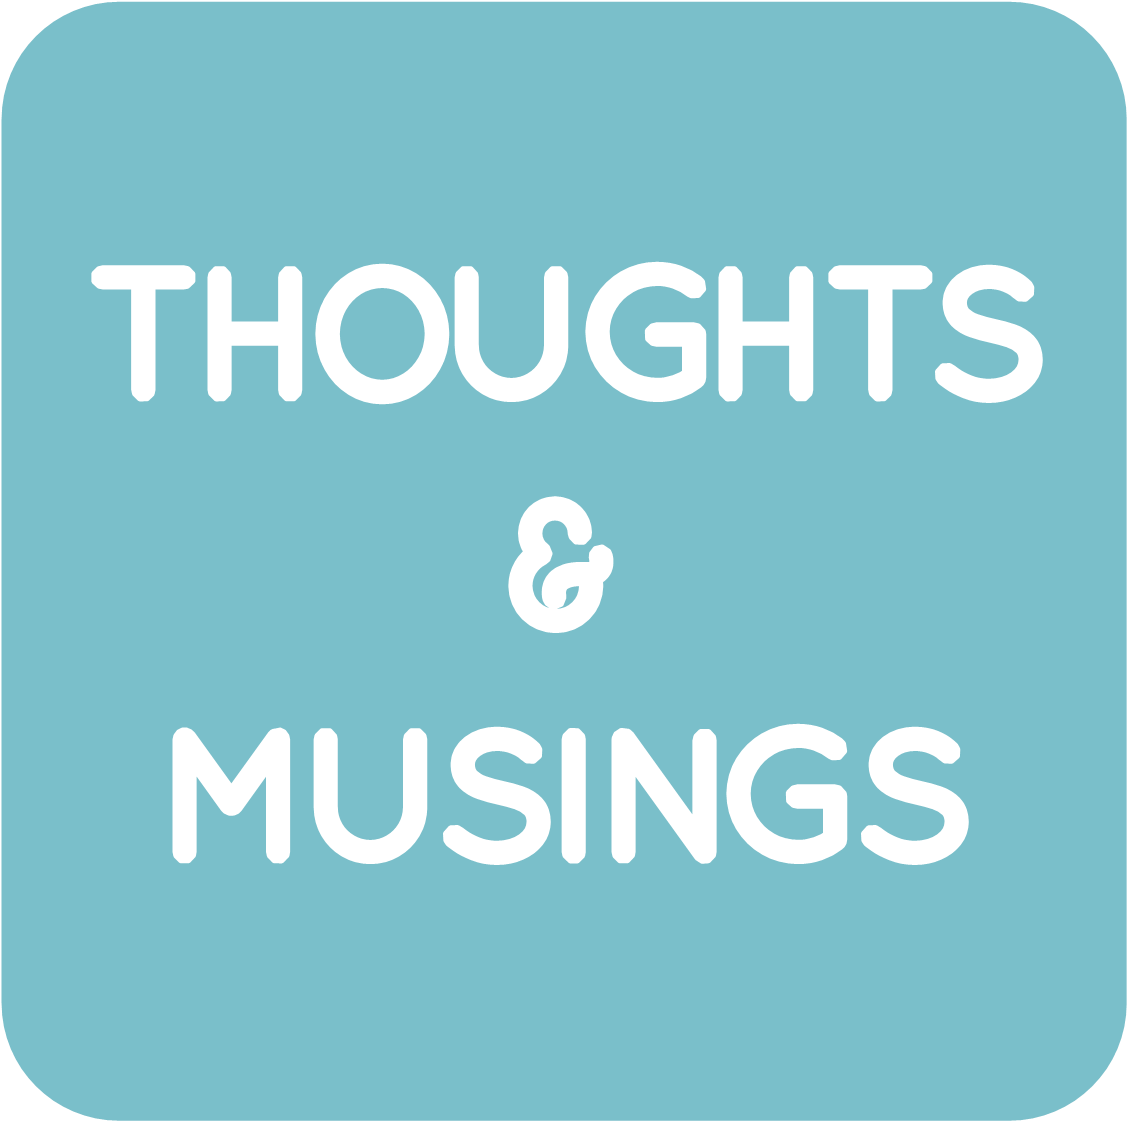 00-THOUGHTS AND MUSINGS.png